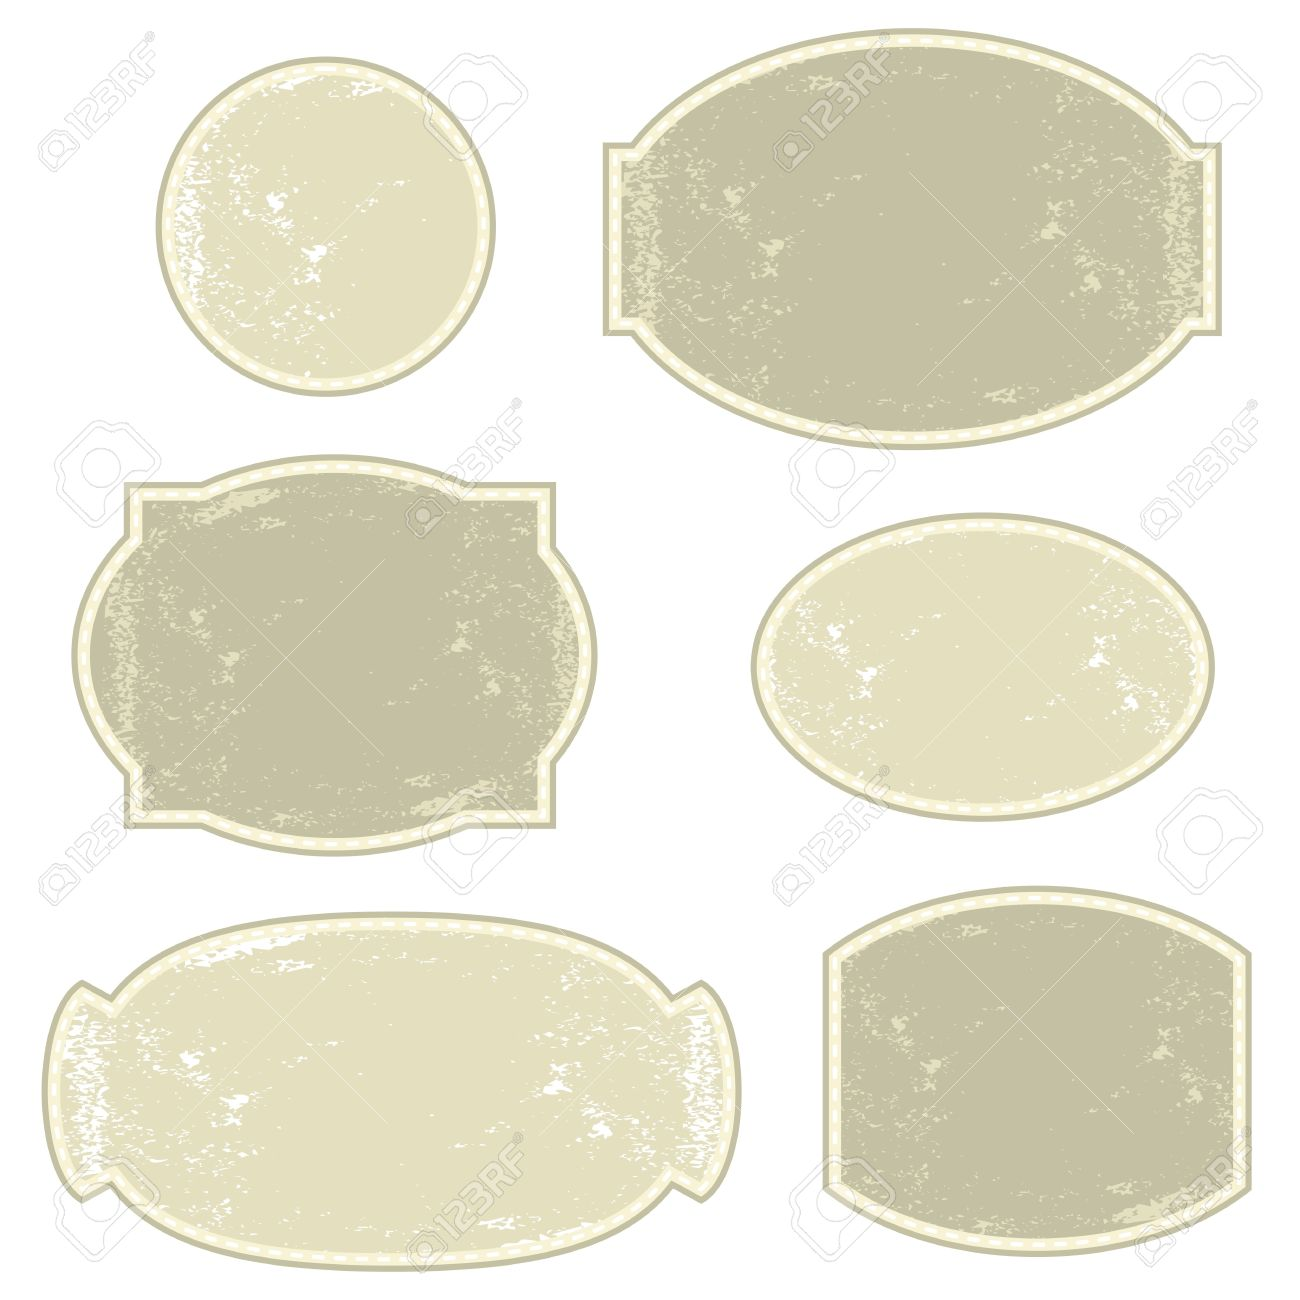 vintage light monochrome six round and oval label set Stock Vector - 16454284